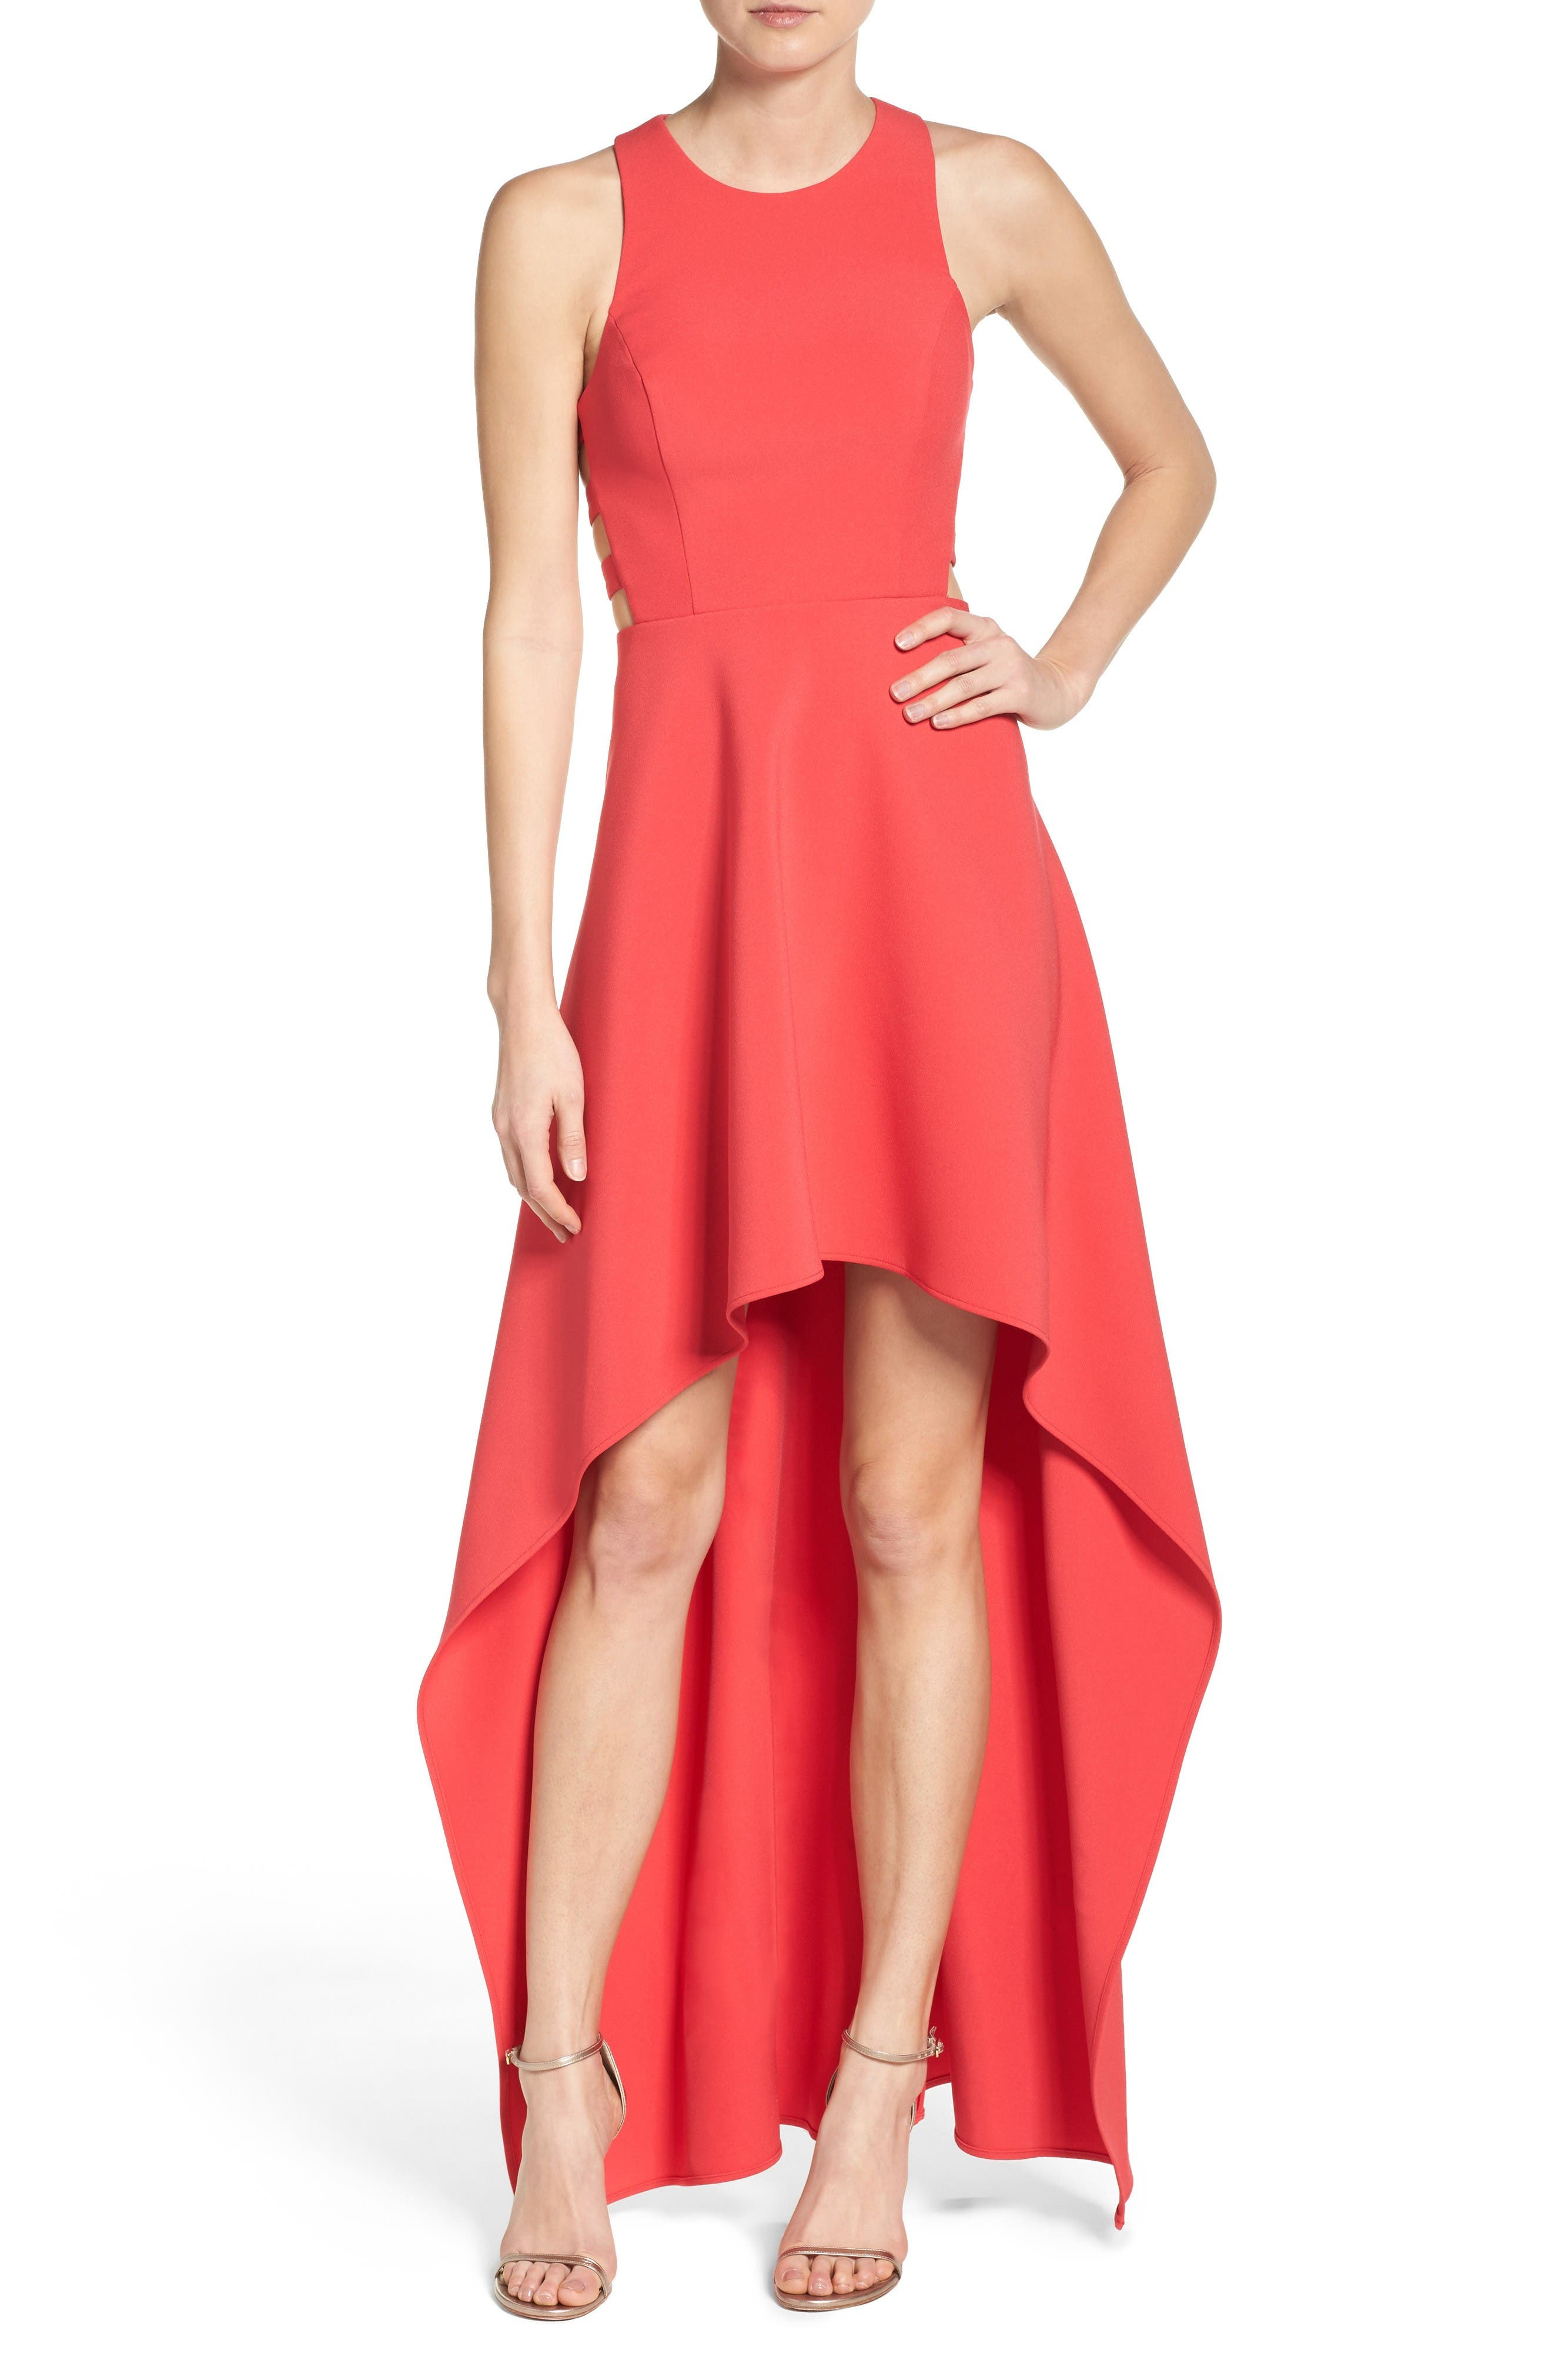 Alternate Image 1 Selected - BCBGMAXAZRIA 'Rosalyn' Cutout High/Low Crepe Gown